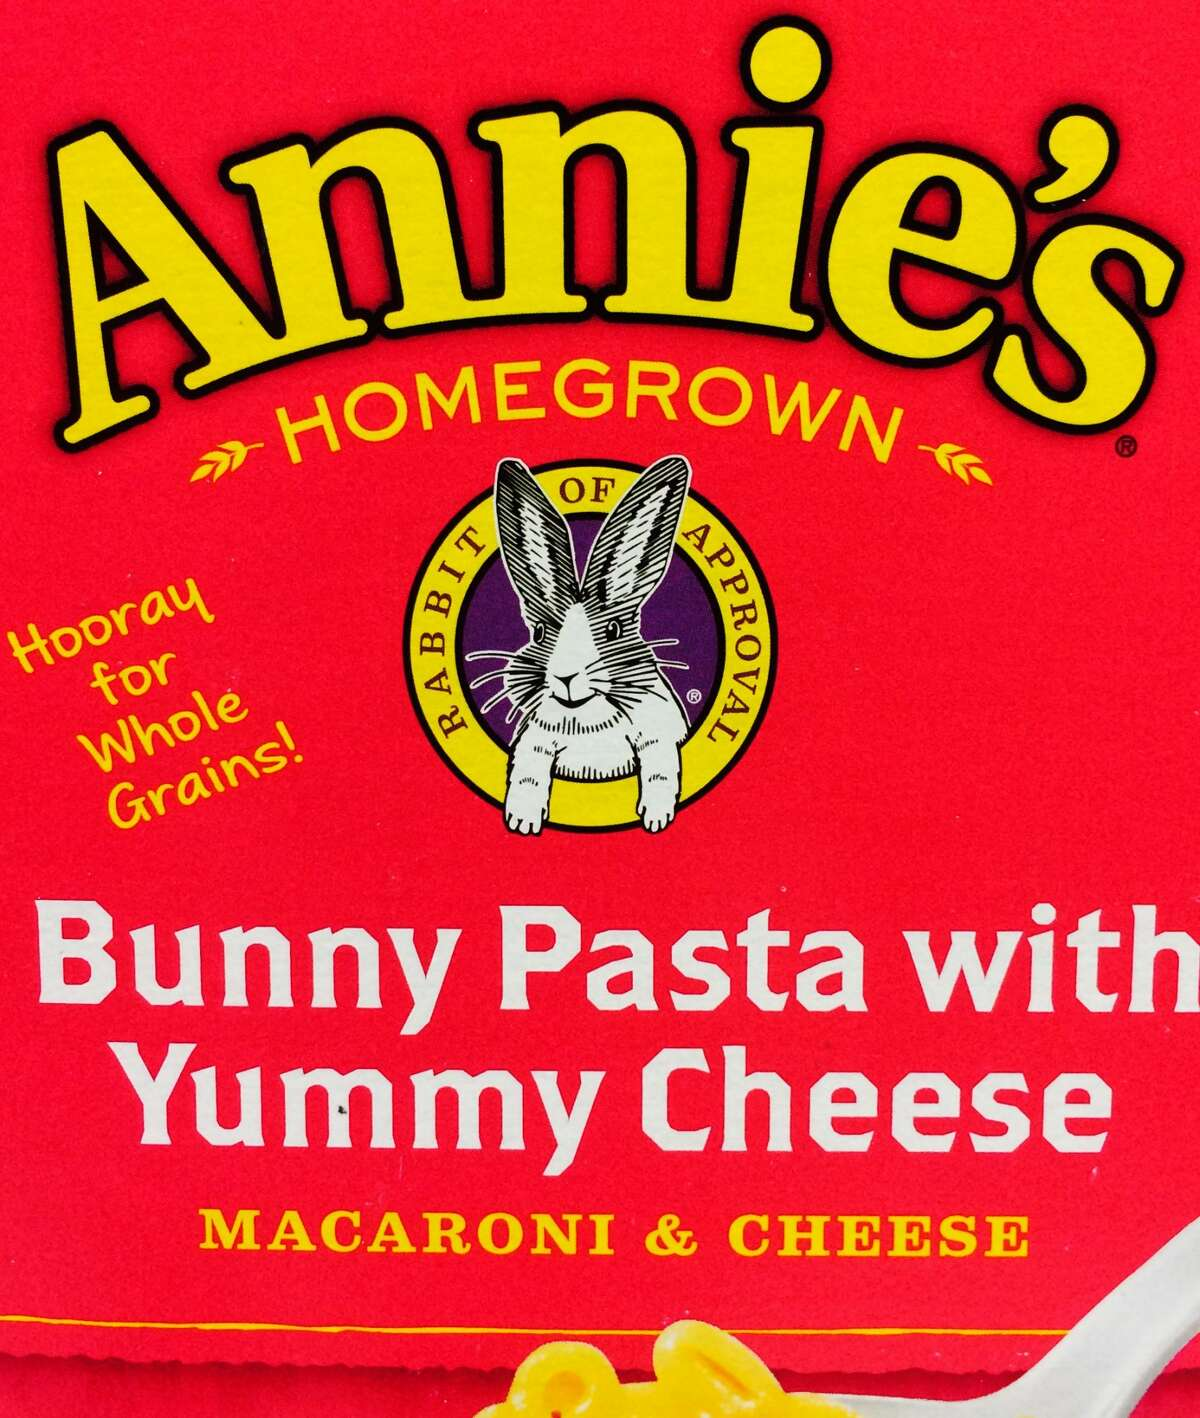 Annie's Homegrown Organic foods Headquarters: Berkeley, Calif. Founded: 1989 Owner: General Mills